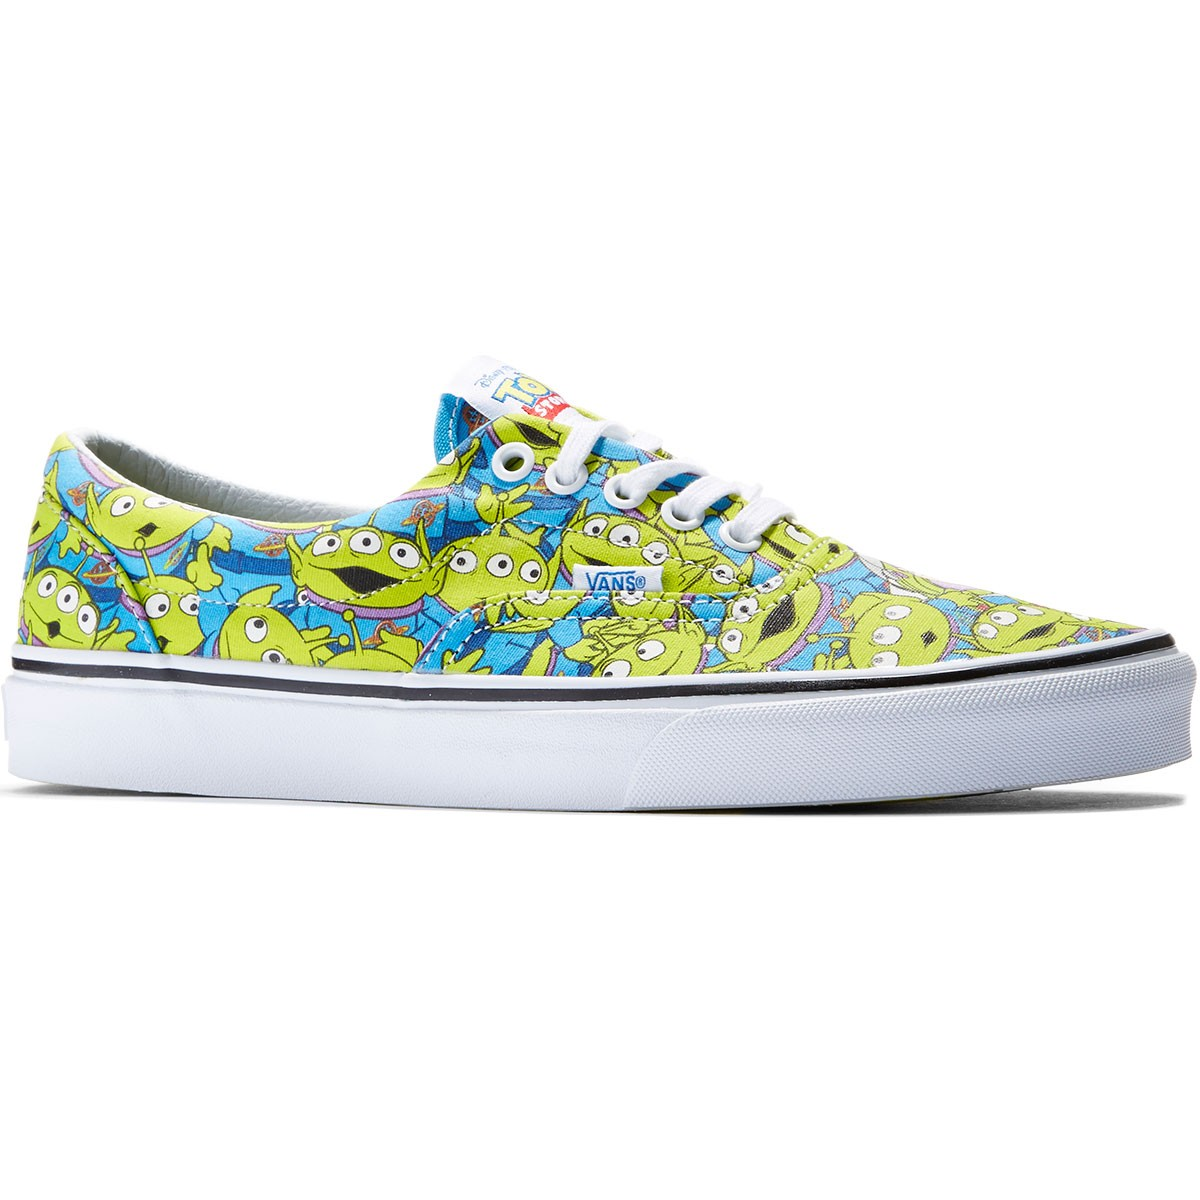 Vans X Disney Toy Story Era Shoes